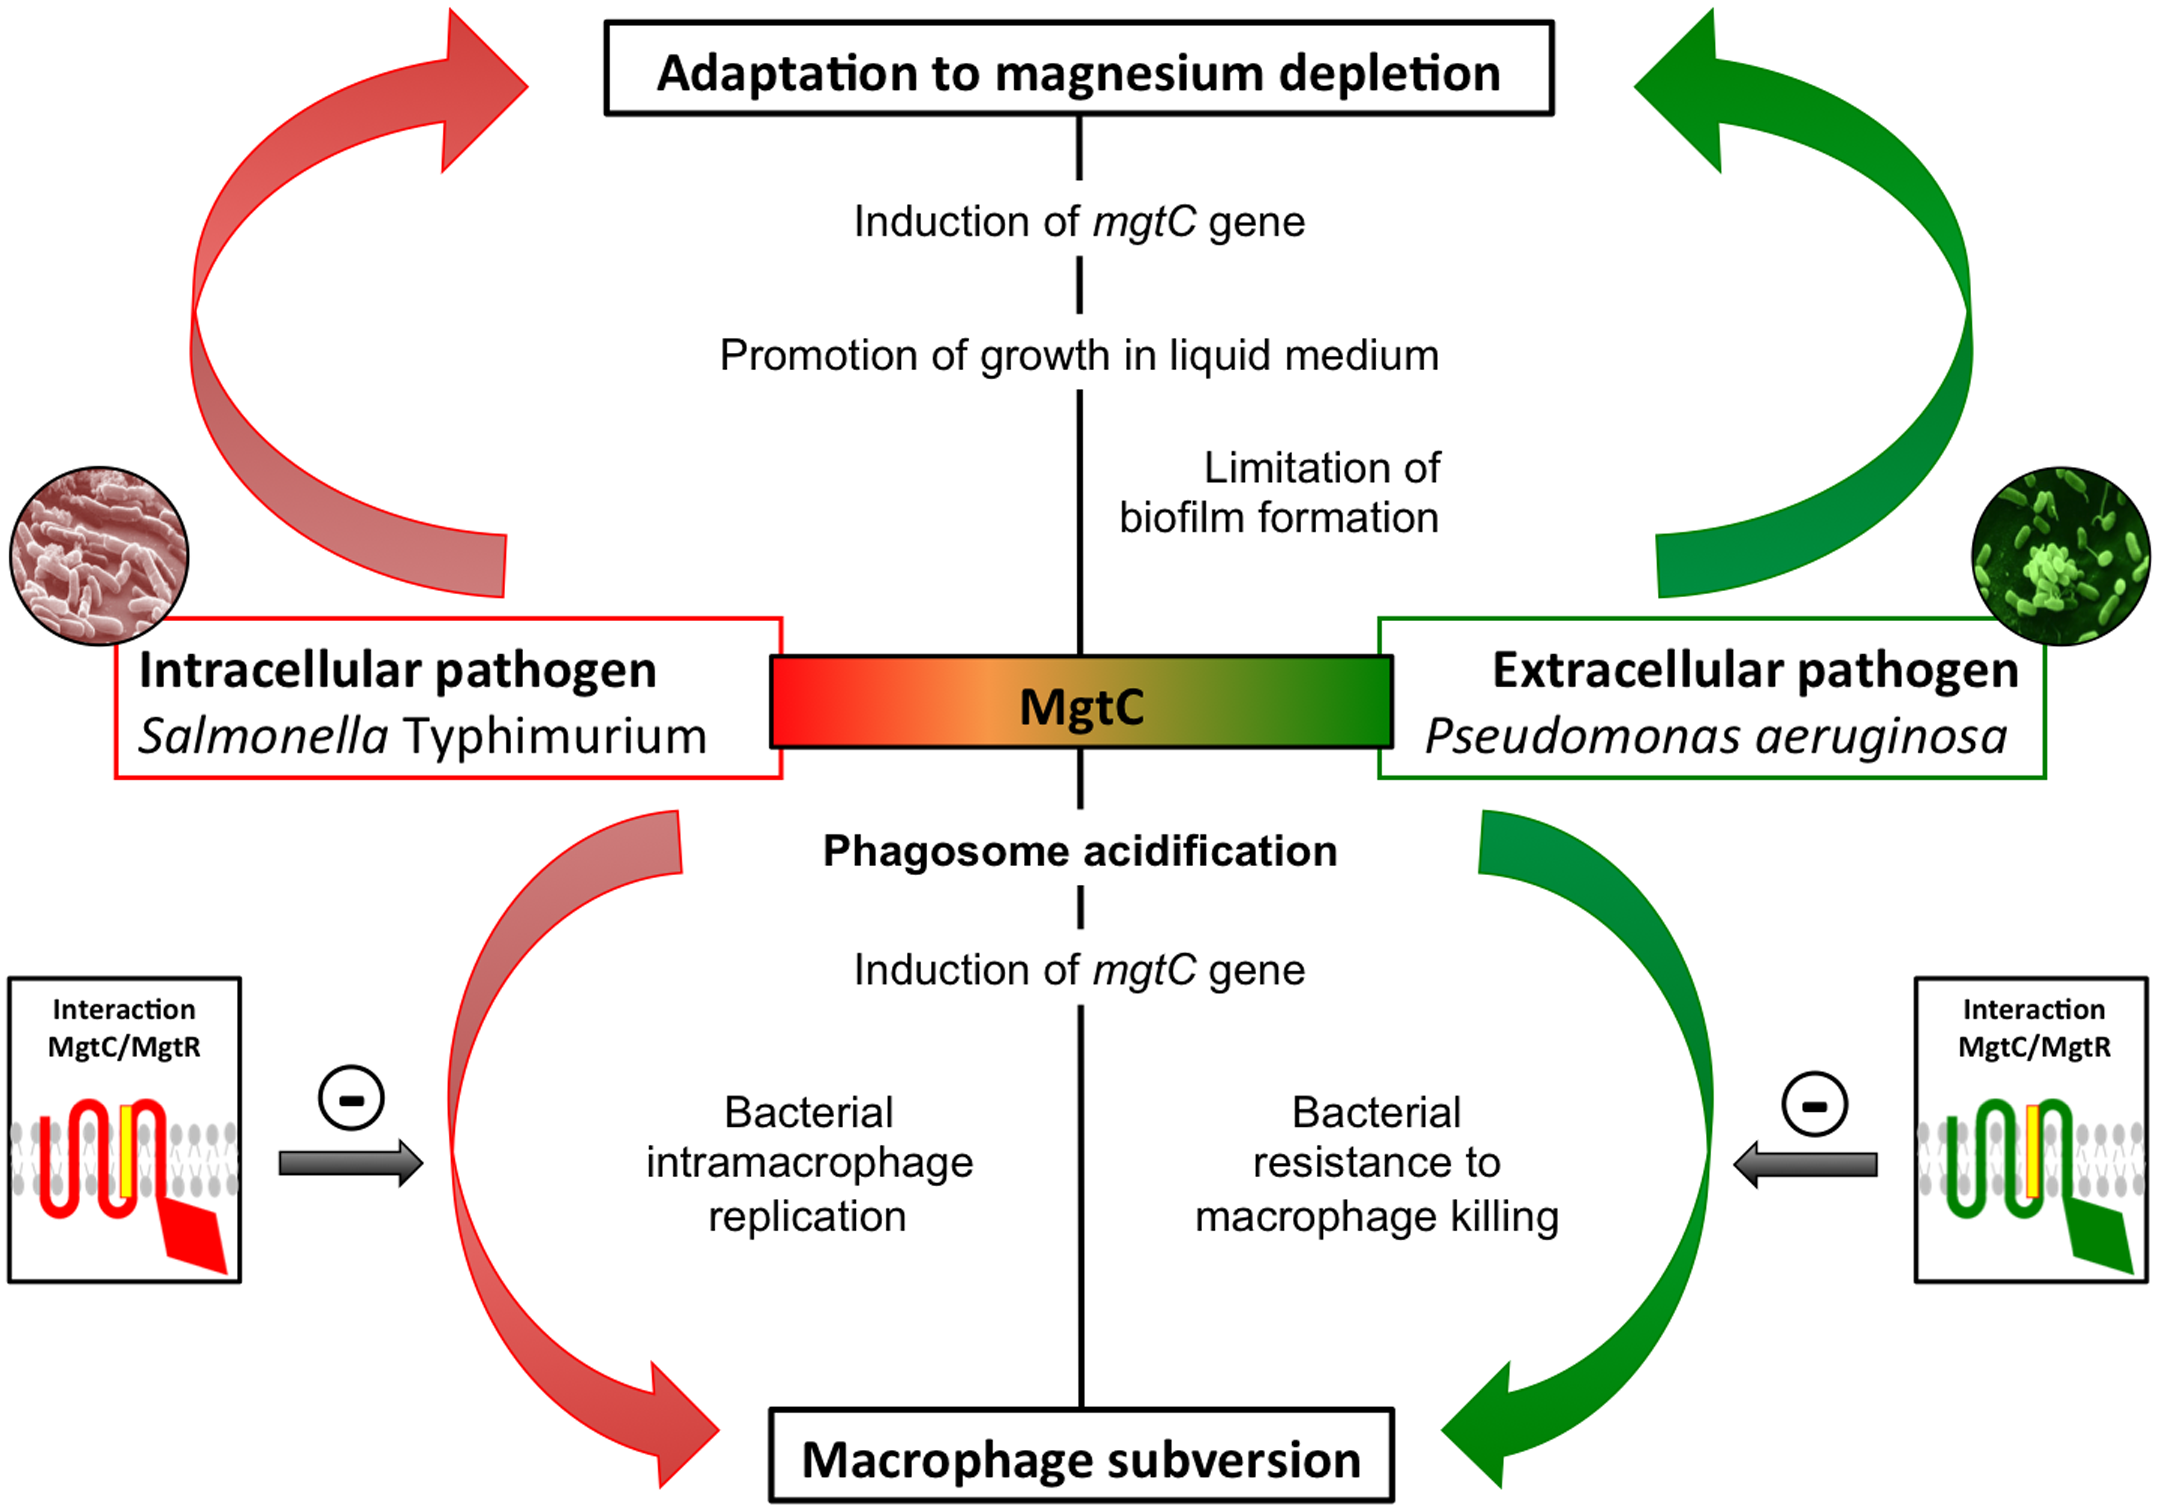 Role of MgtC in intracellular and extracellular pathogens.